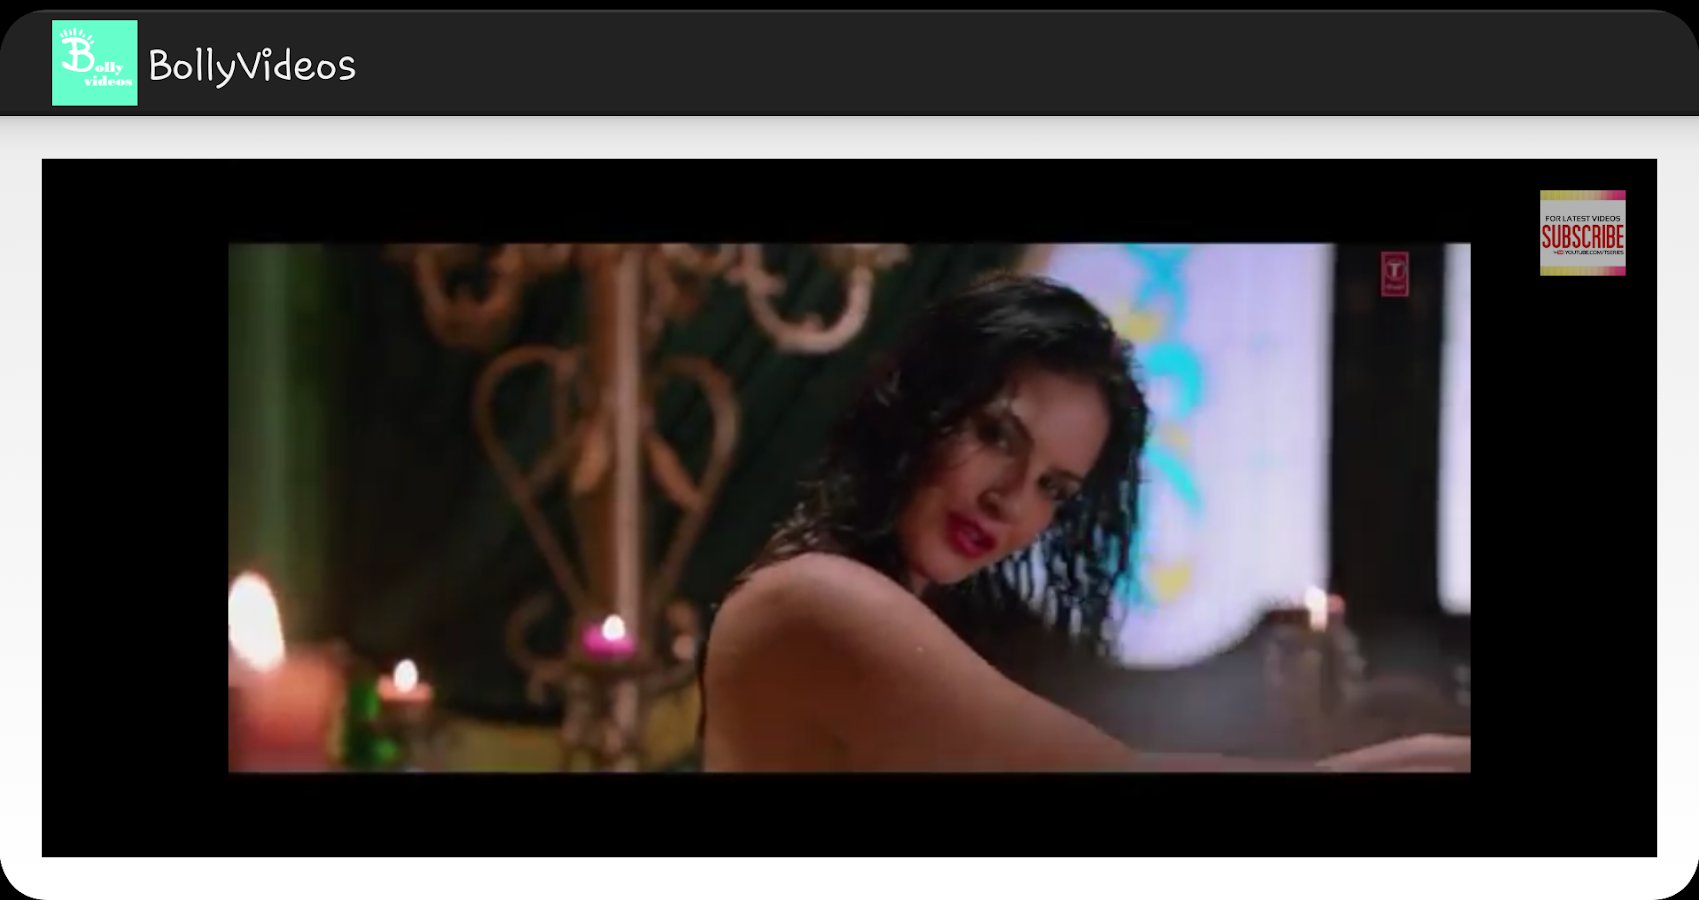 BollyVideos -Bollywood Videos- screenshot